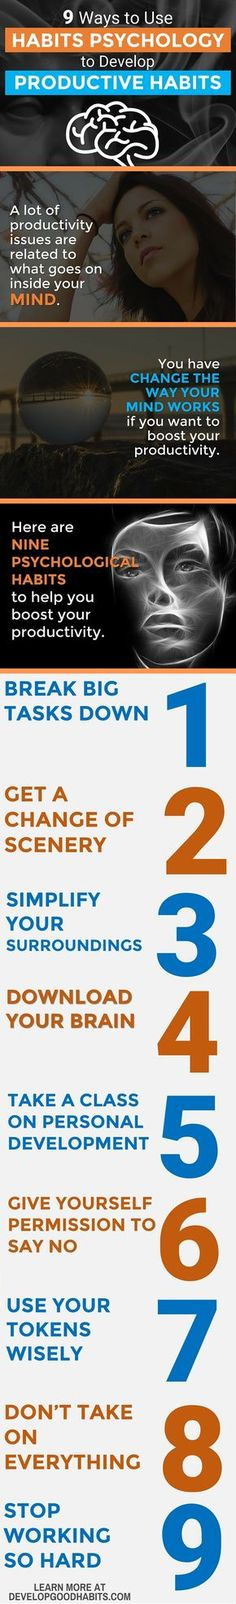 Increase your productivity infographic. A list of 9 psychology habits that will help you to be more productive. http://www.developgoodhabits.com/habits-psychology/